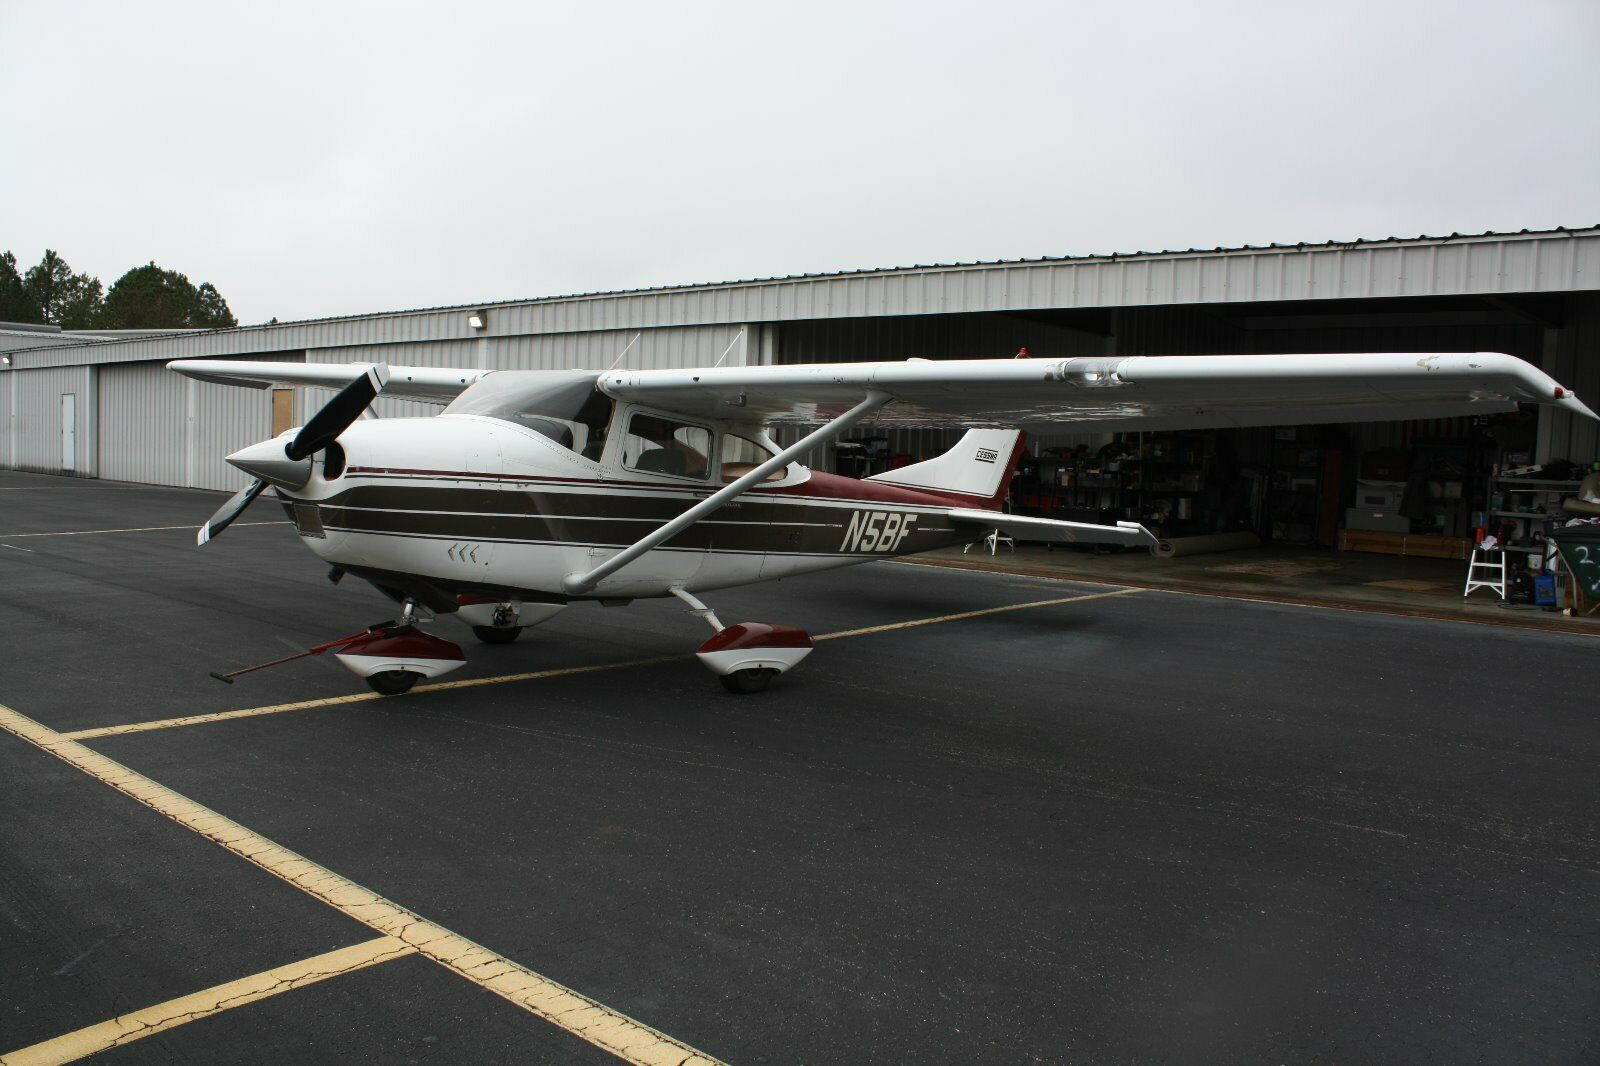 new parts 1968 Cessna 182L aircraft for sale